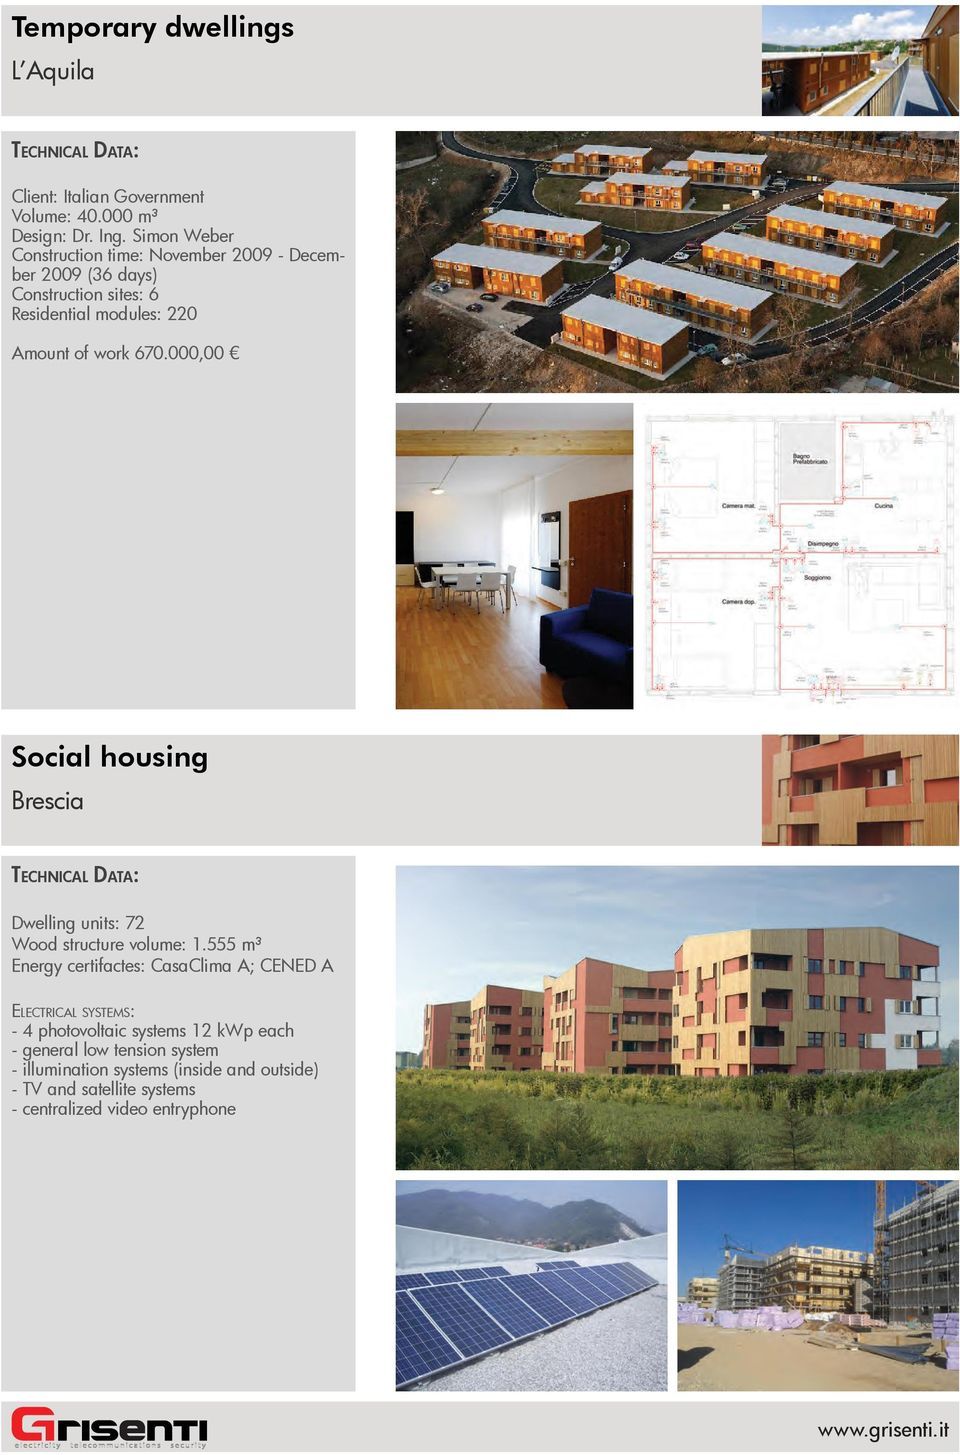 670.000,00 Social housing Brescia Dwelling units: 72 Wood structure volume: 1.